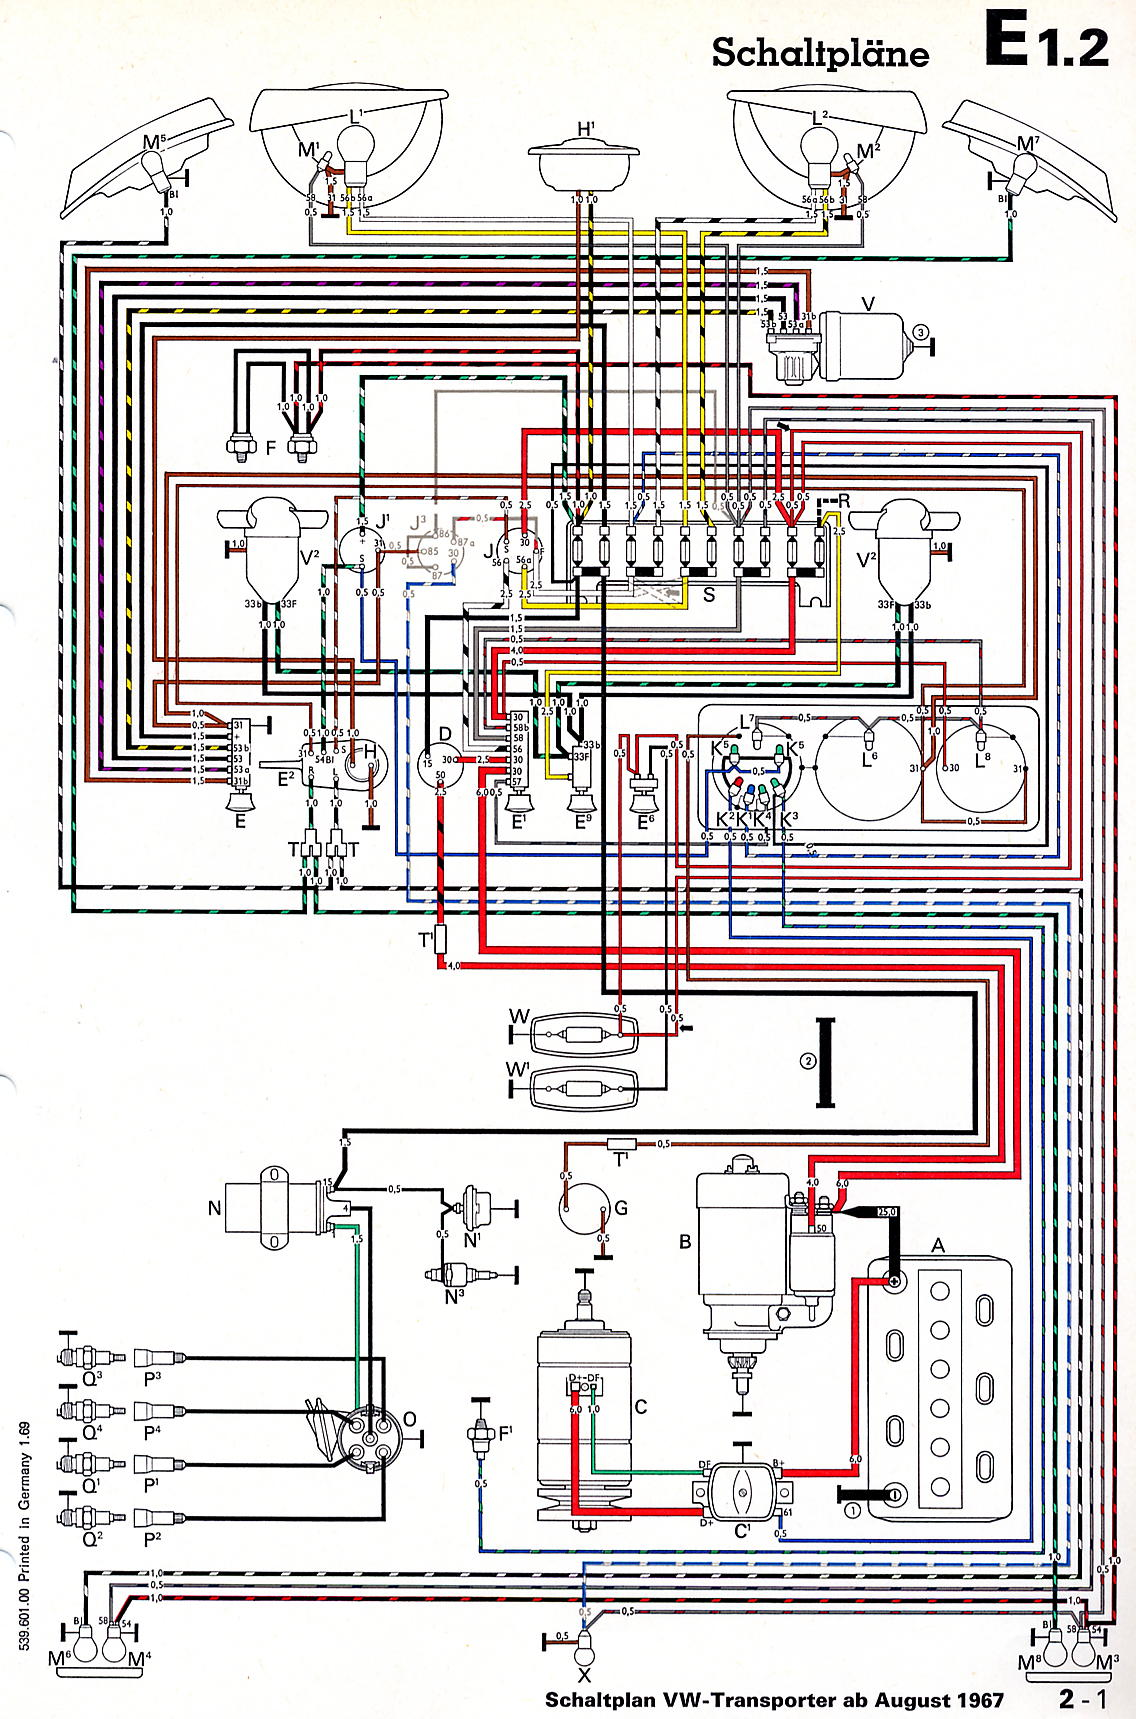 VintageBus.Com - VW Bus (and other) Wiring Diagrams